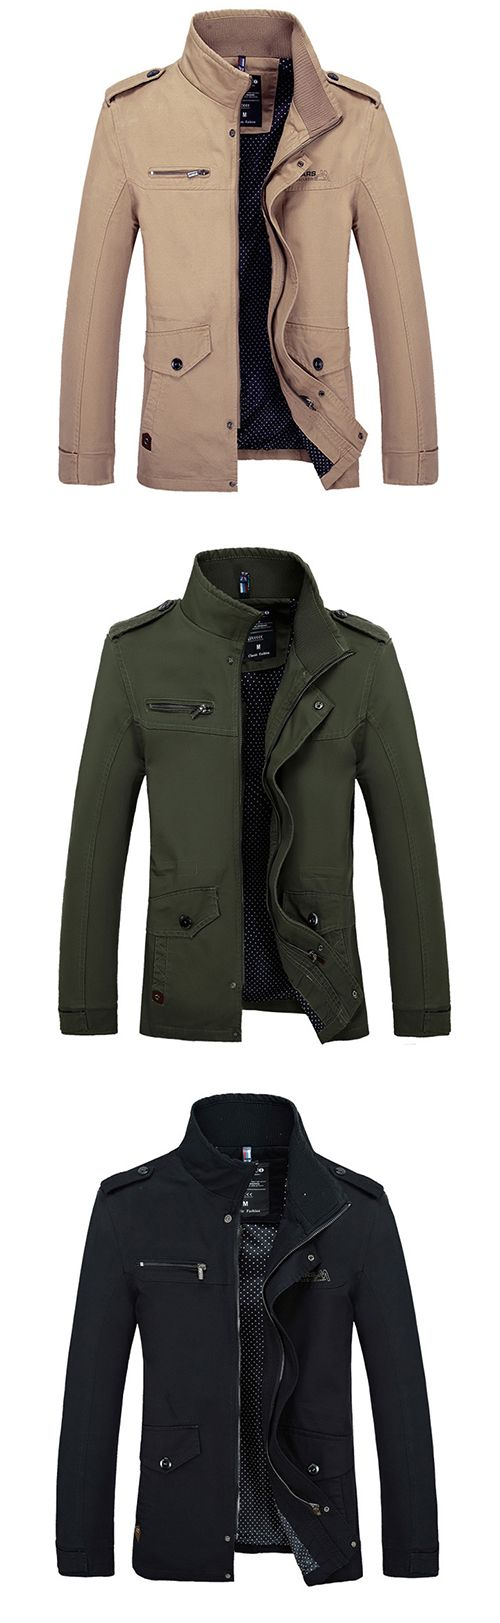 Men's Daily Going out Simple Casual Winter Fall Jackets